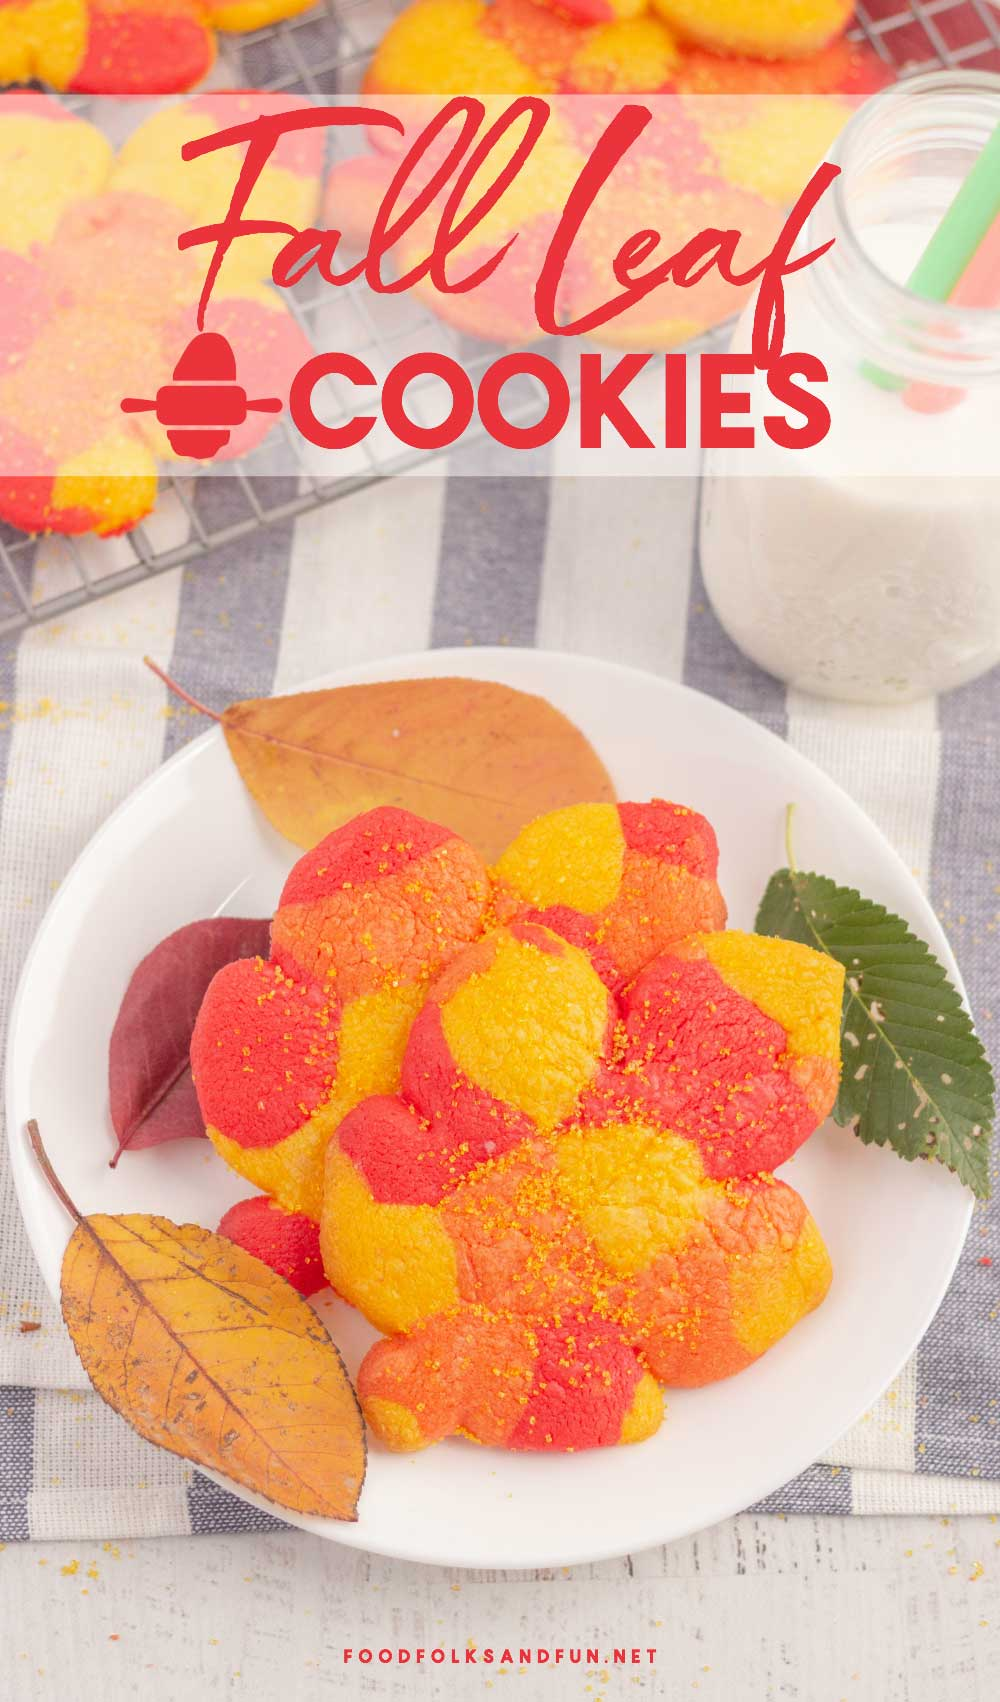 I'm celebrating beautiful fall foliage with these Fall Cookies! Don't be intimidated, they're easier to make than they look!